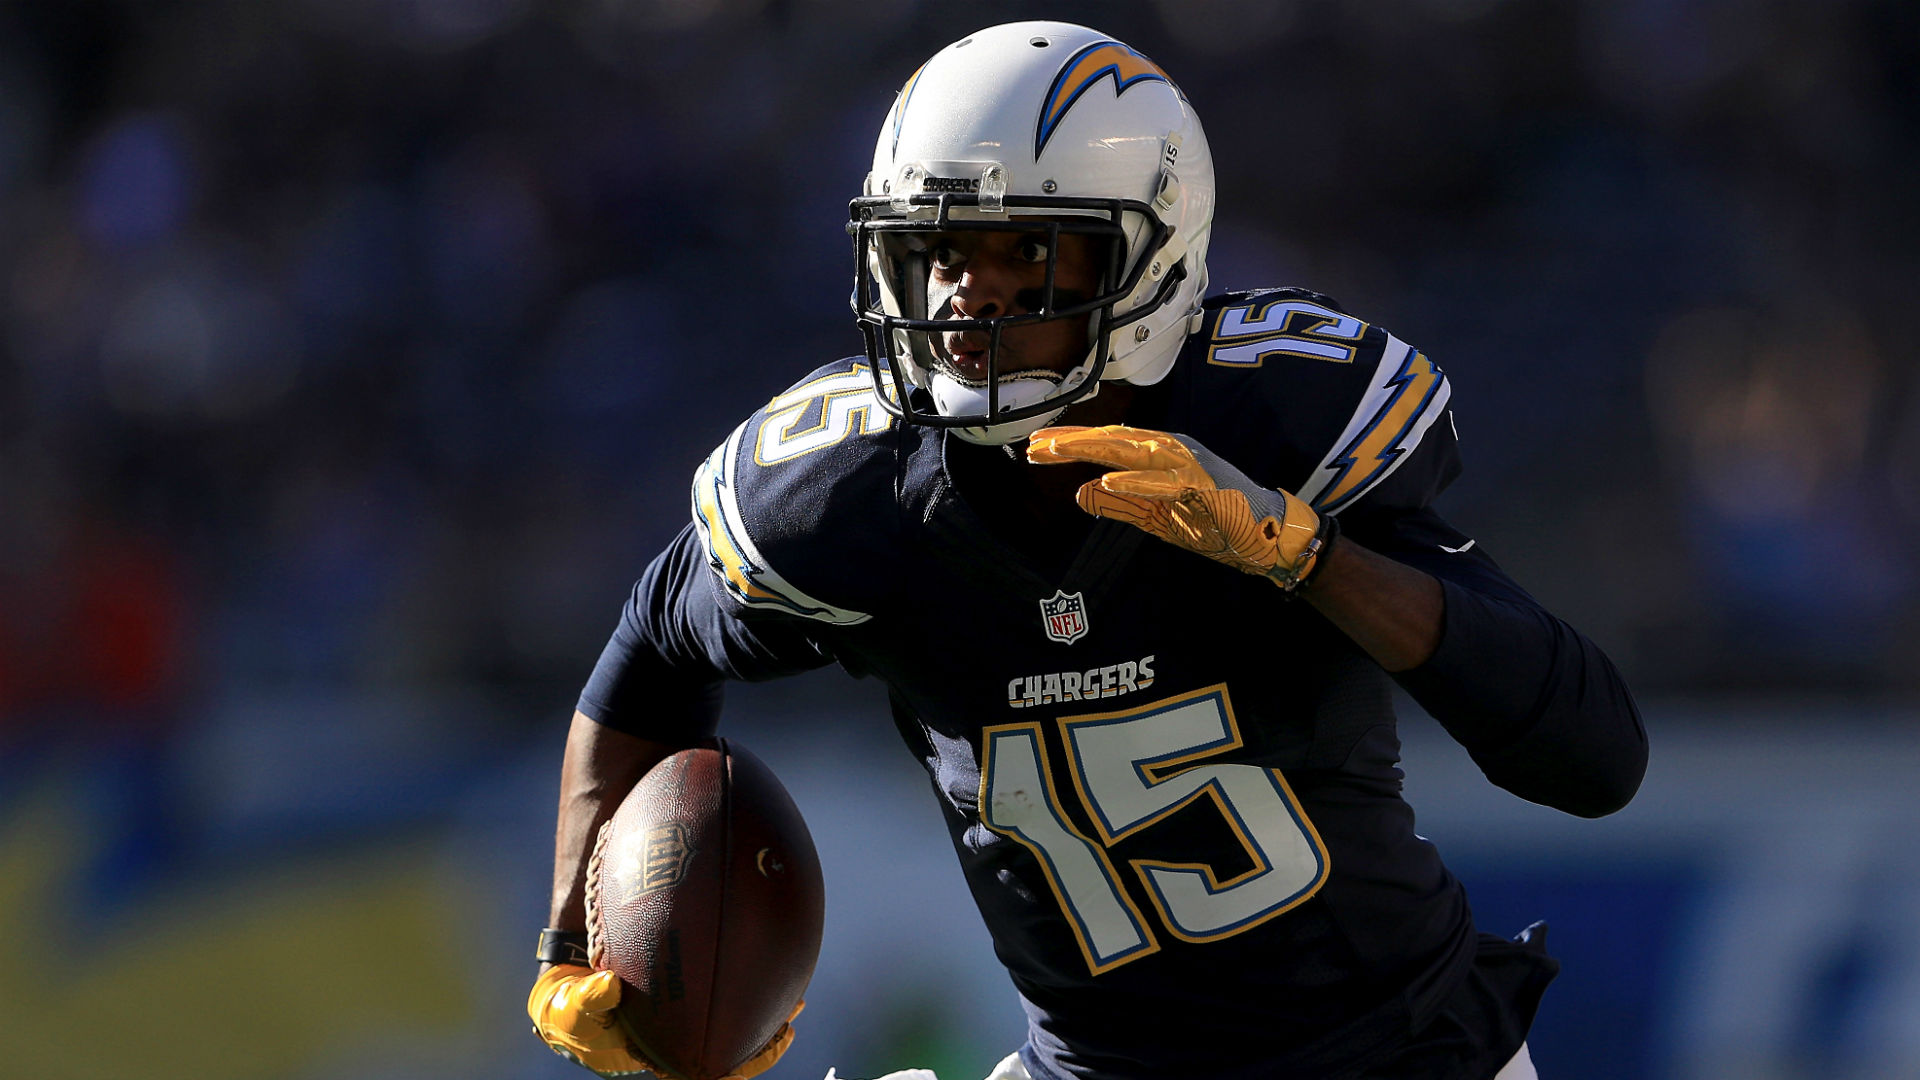 Chargers wide receiver Dontrelle Inman to miss offseason program after having surgery